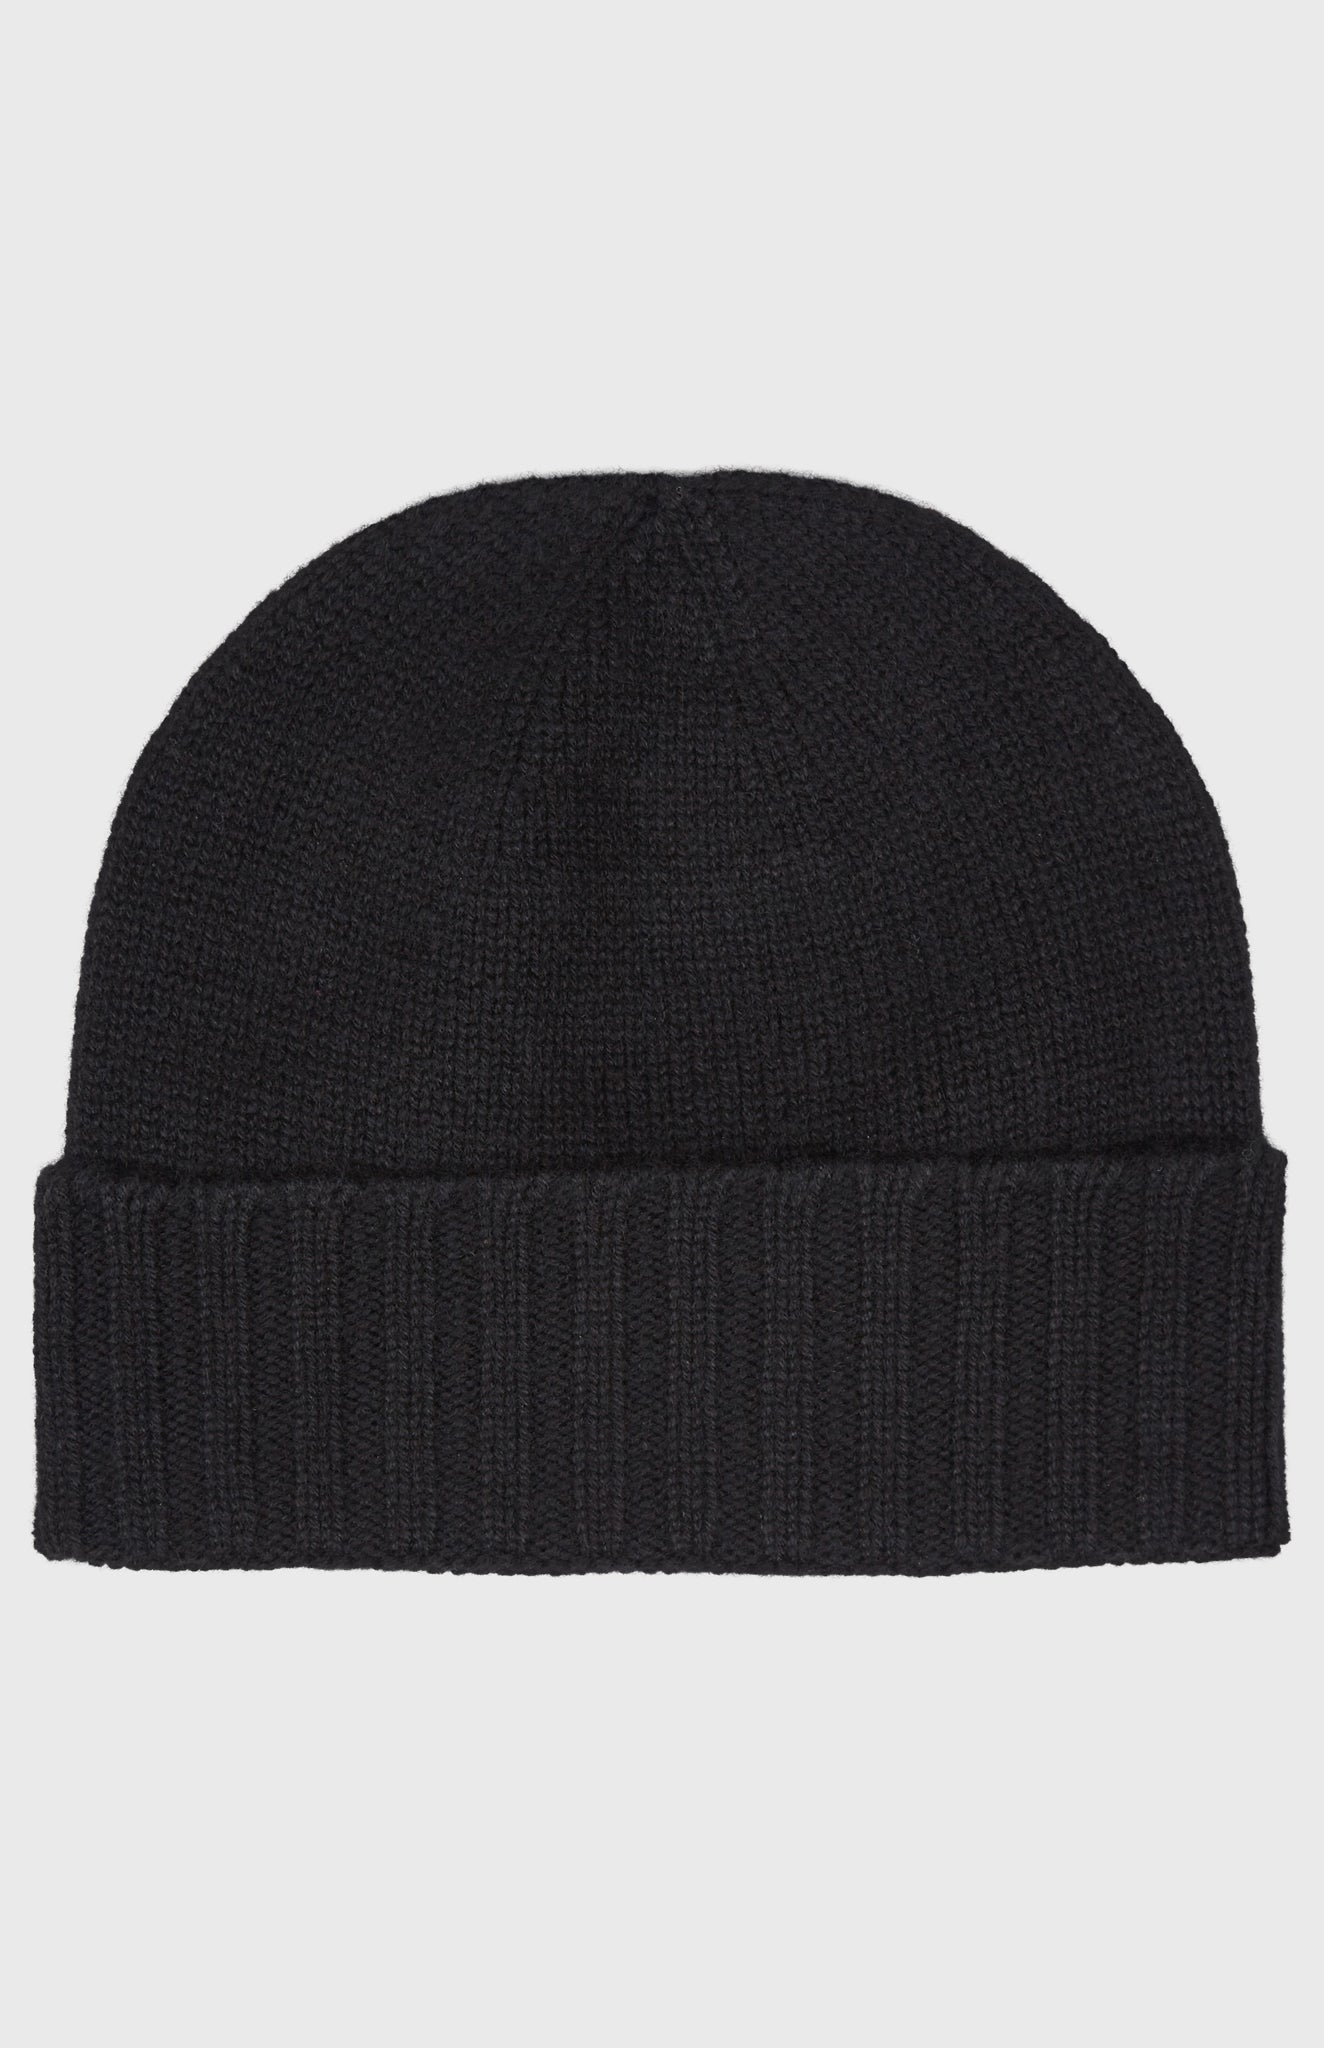 Women's Scottish Cashmere Hat In Black